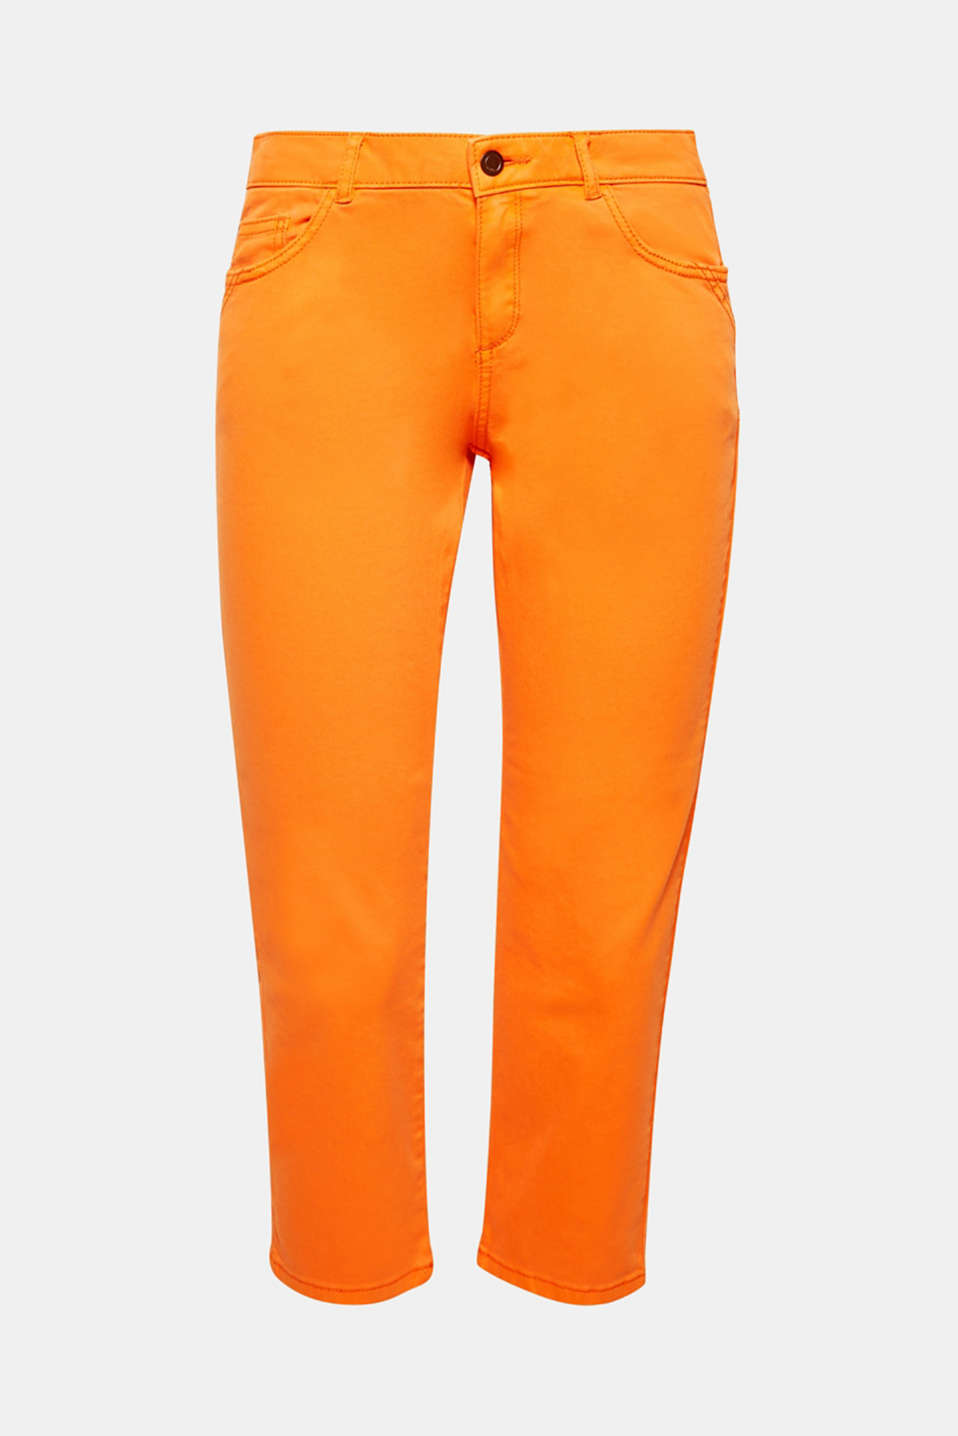 Cool styling option for warm summer days: the comfy stretch fabric and lots of different on-trend colours make these Capri pants something special.